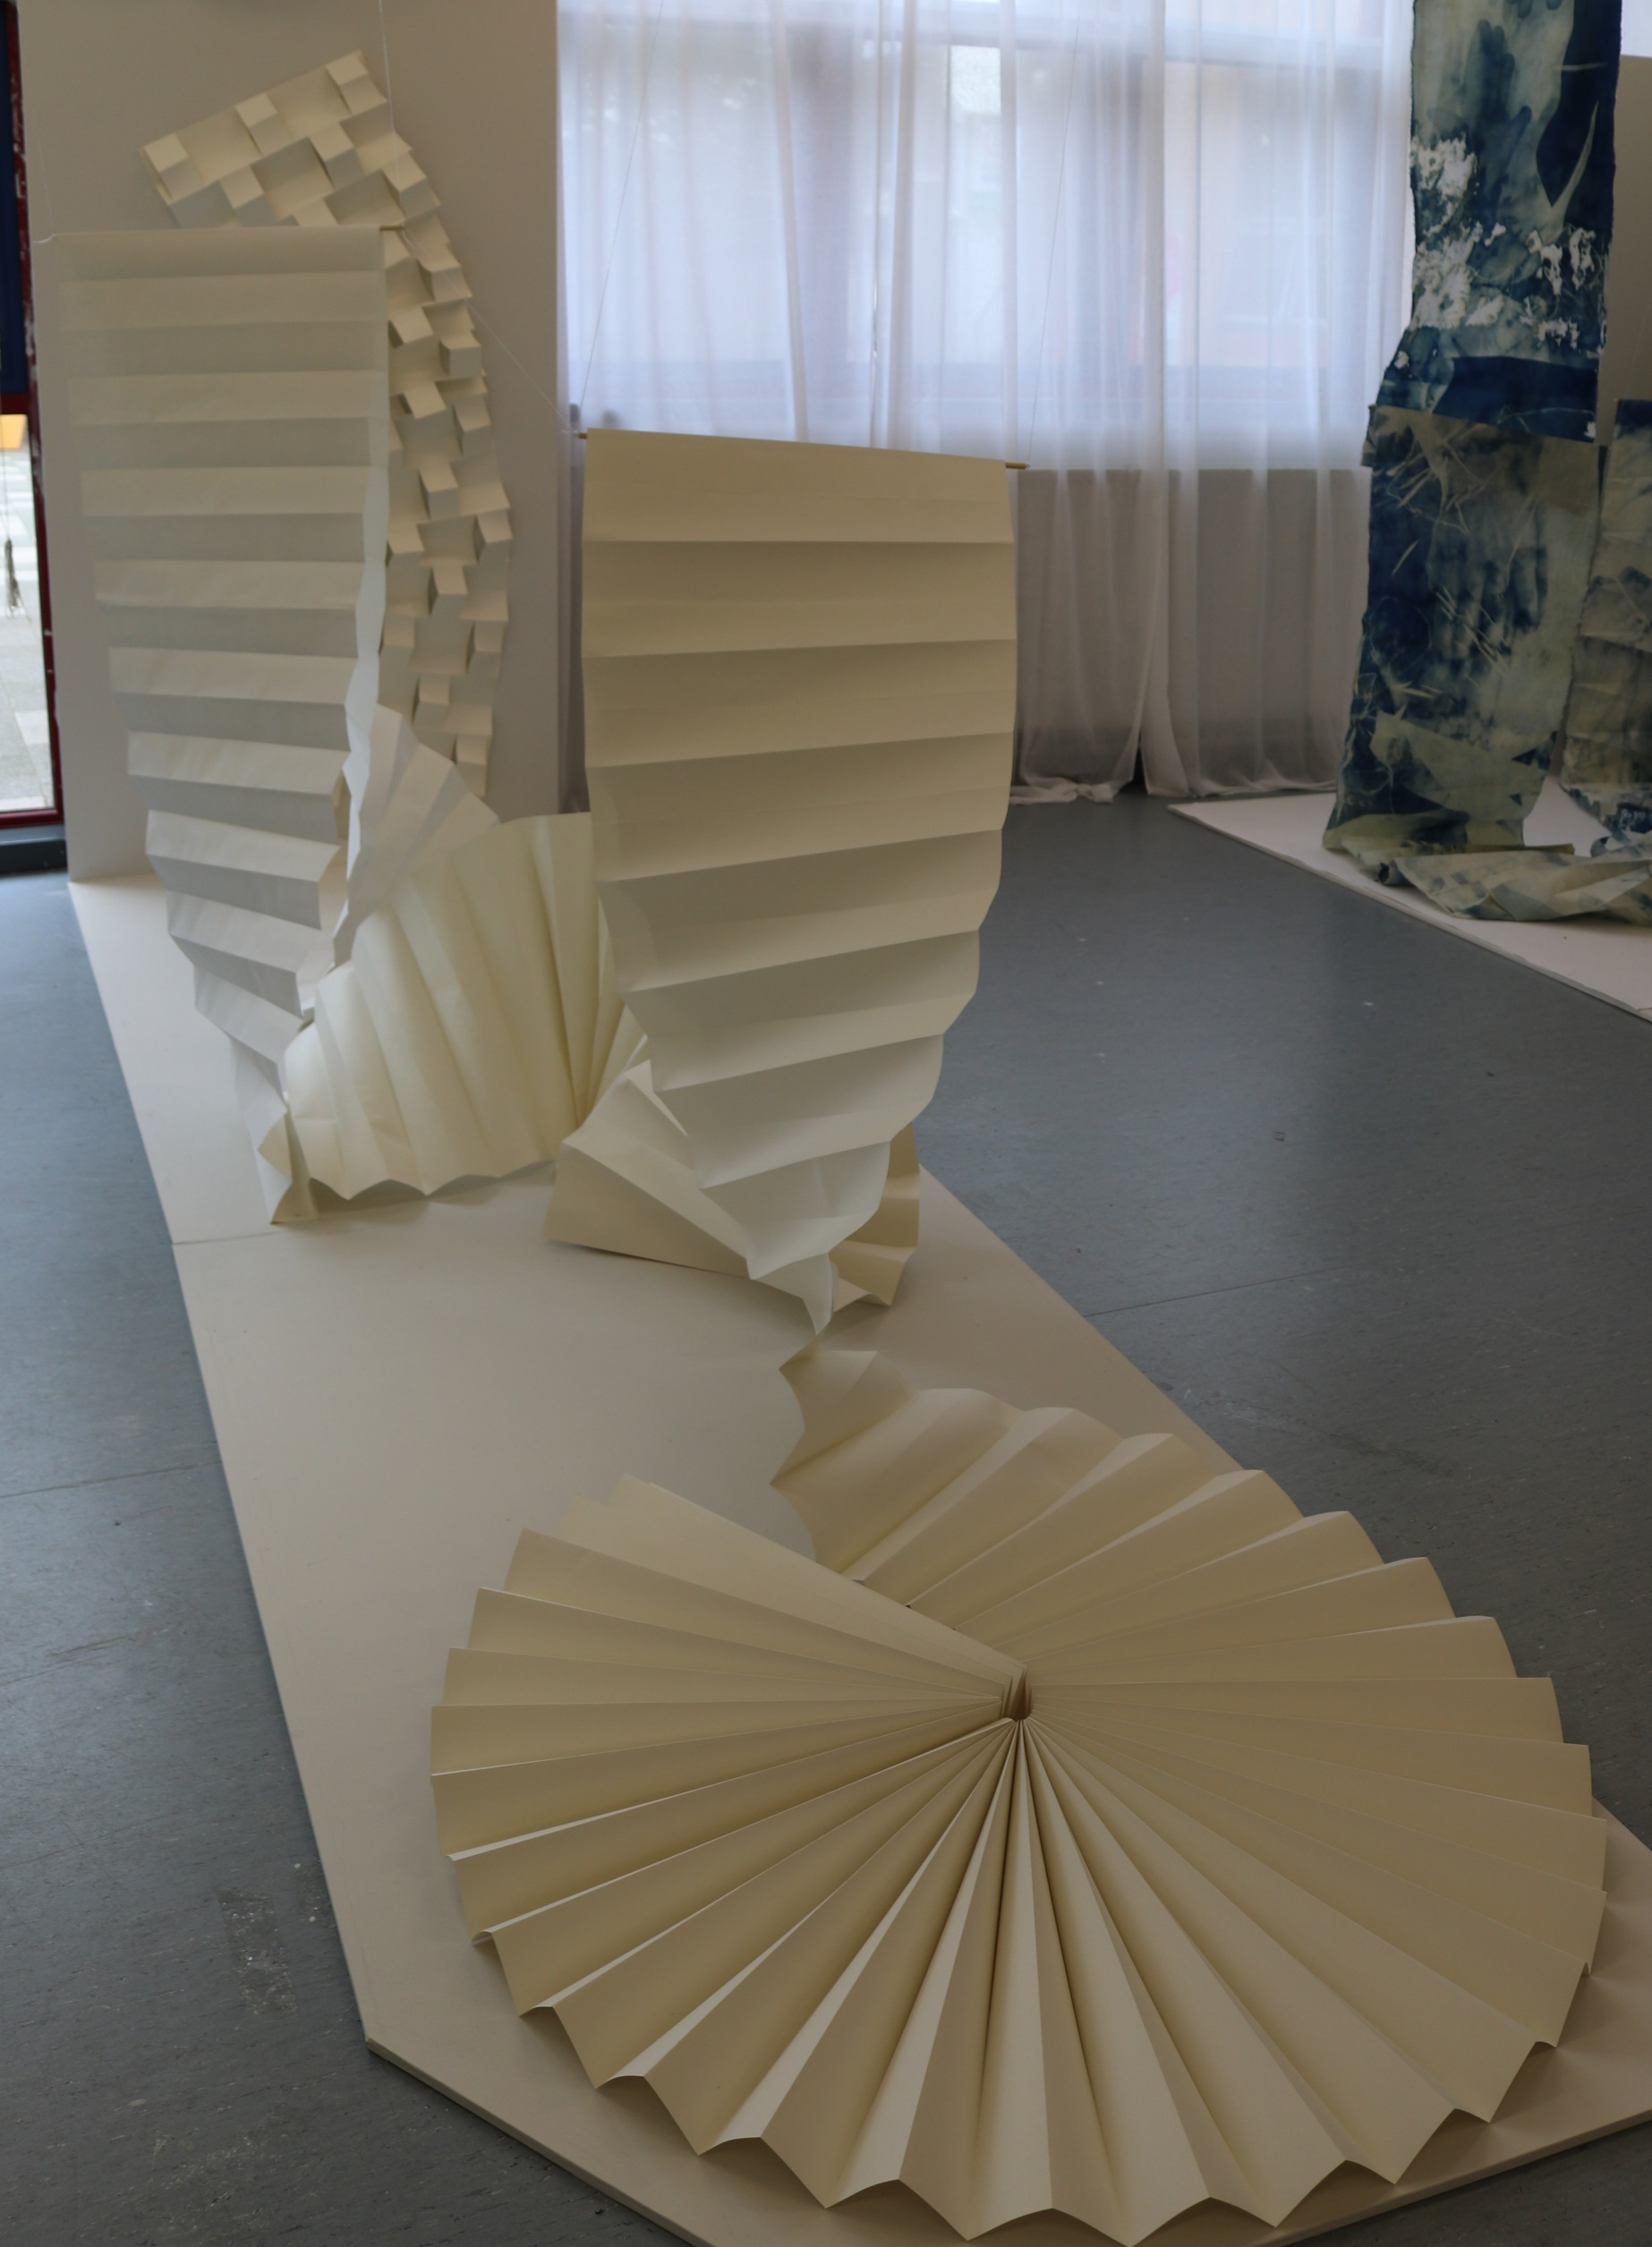 Paper Installation V Leeming 2019